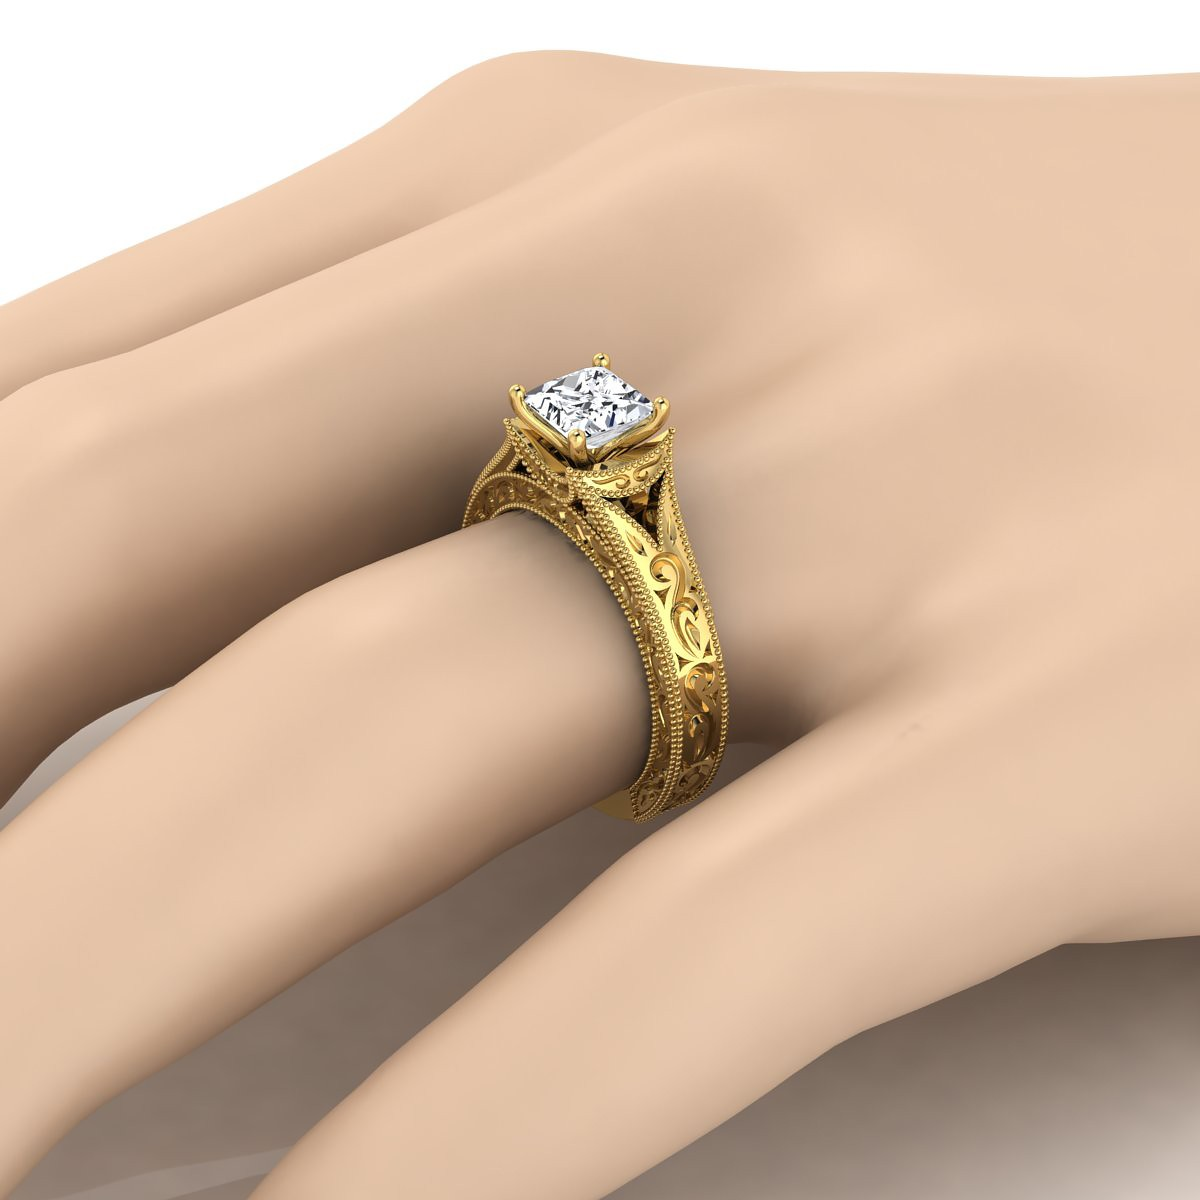 Princess Cut Antique Inspired Engraved Diamond Engagement Ring With Millgrain Finish In 14k Yellow Gold